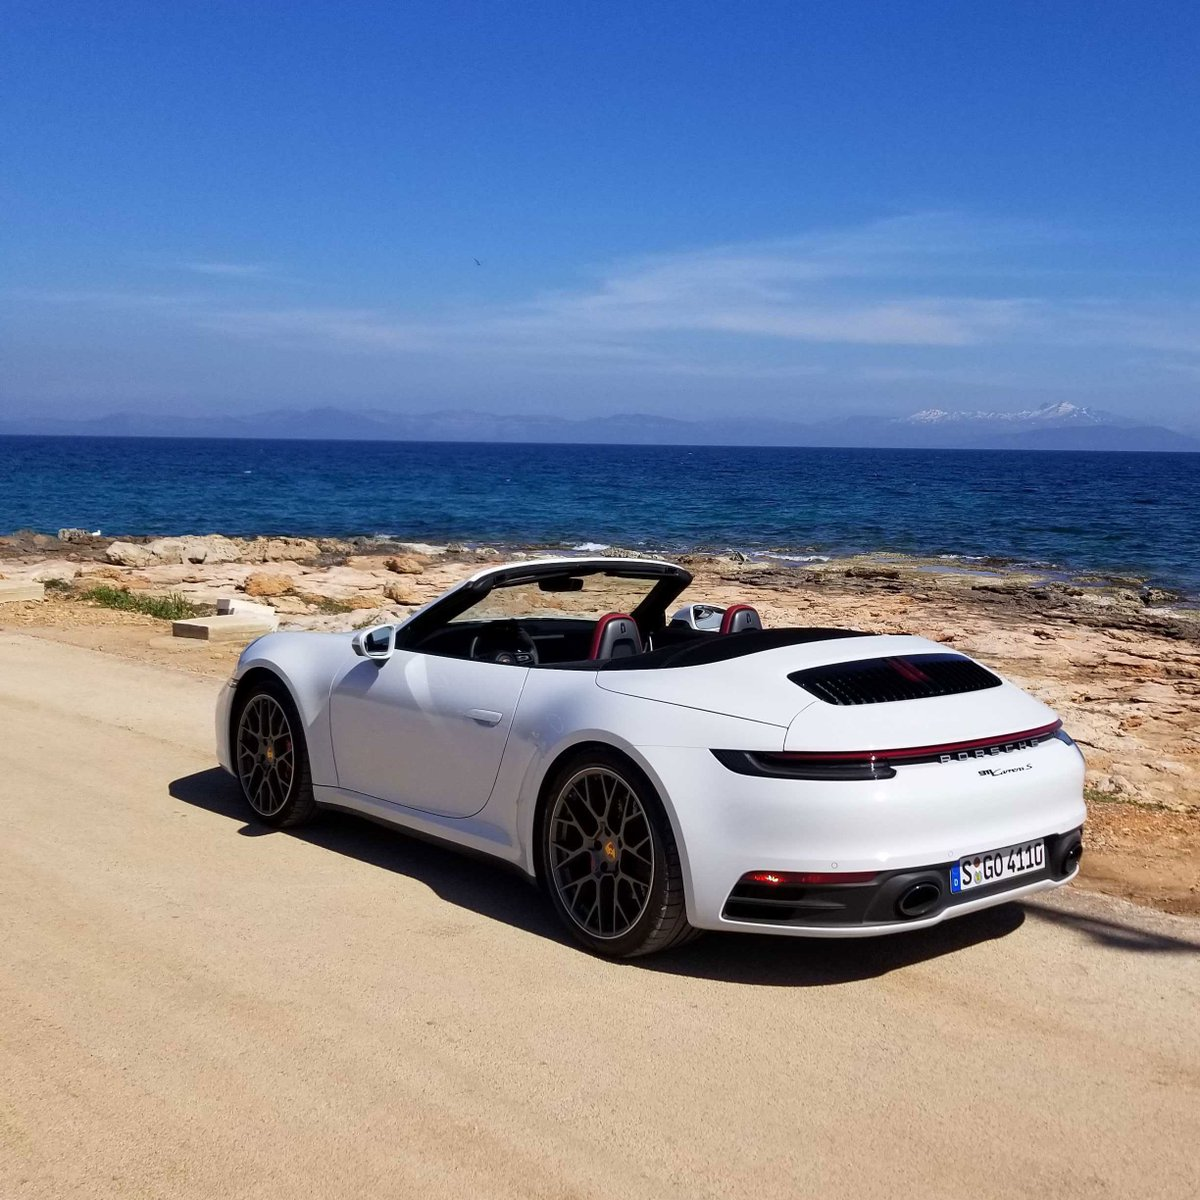 Roadshow On Twitter We Re Out With The 2020 Porsche 911 Carrera S Cabriolet White Or Red